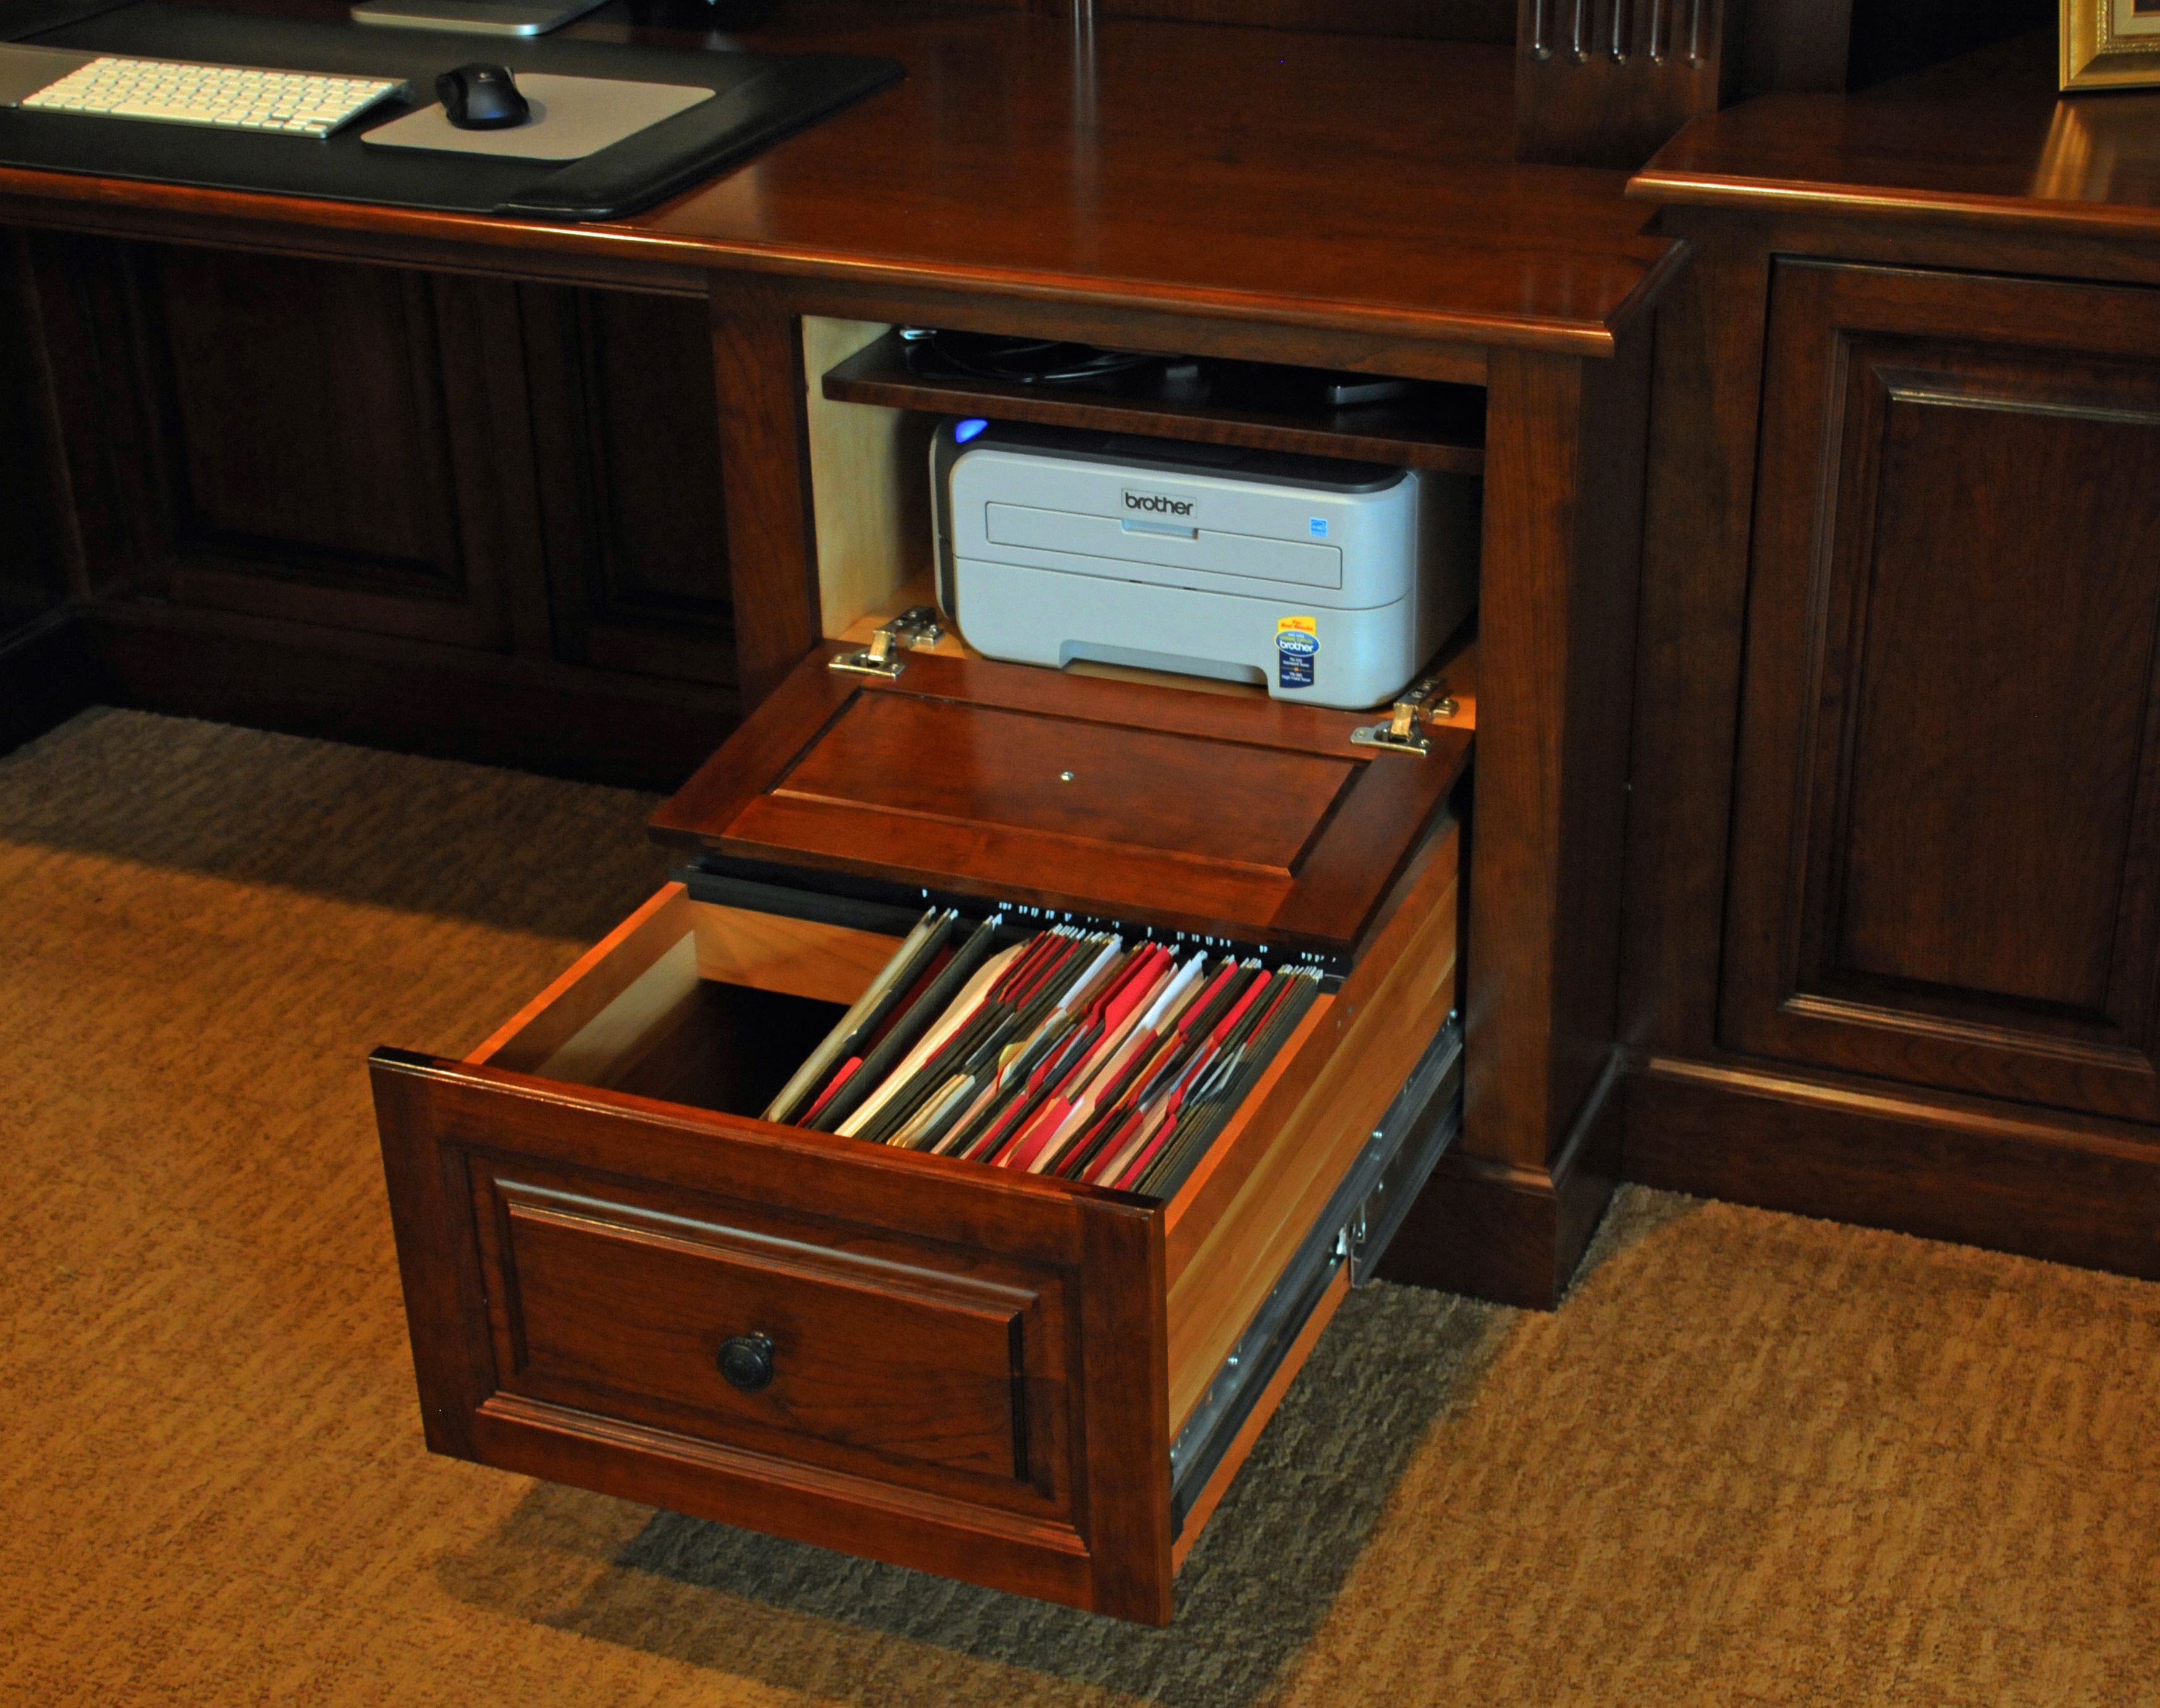 Genial How To Hide A Printer In Your Home Office | The DIY Playbook Home Office  Decor